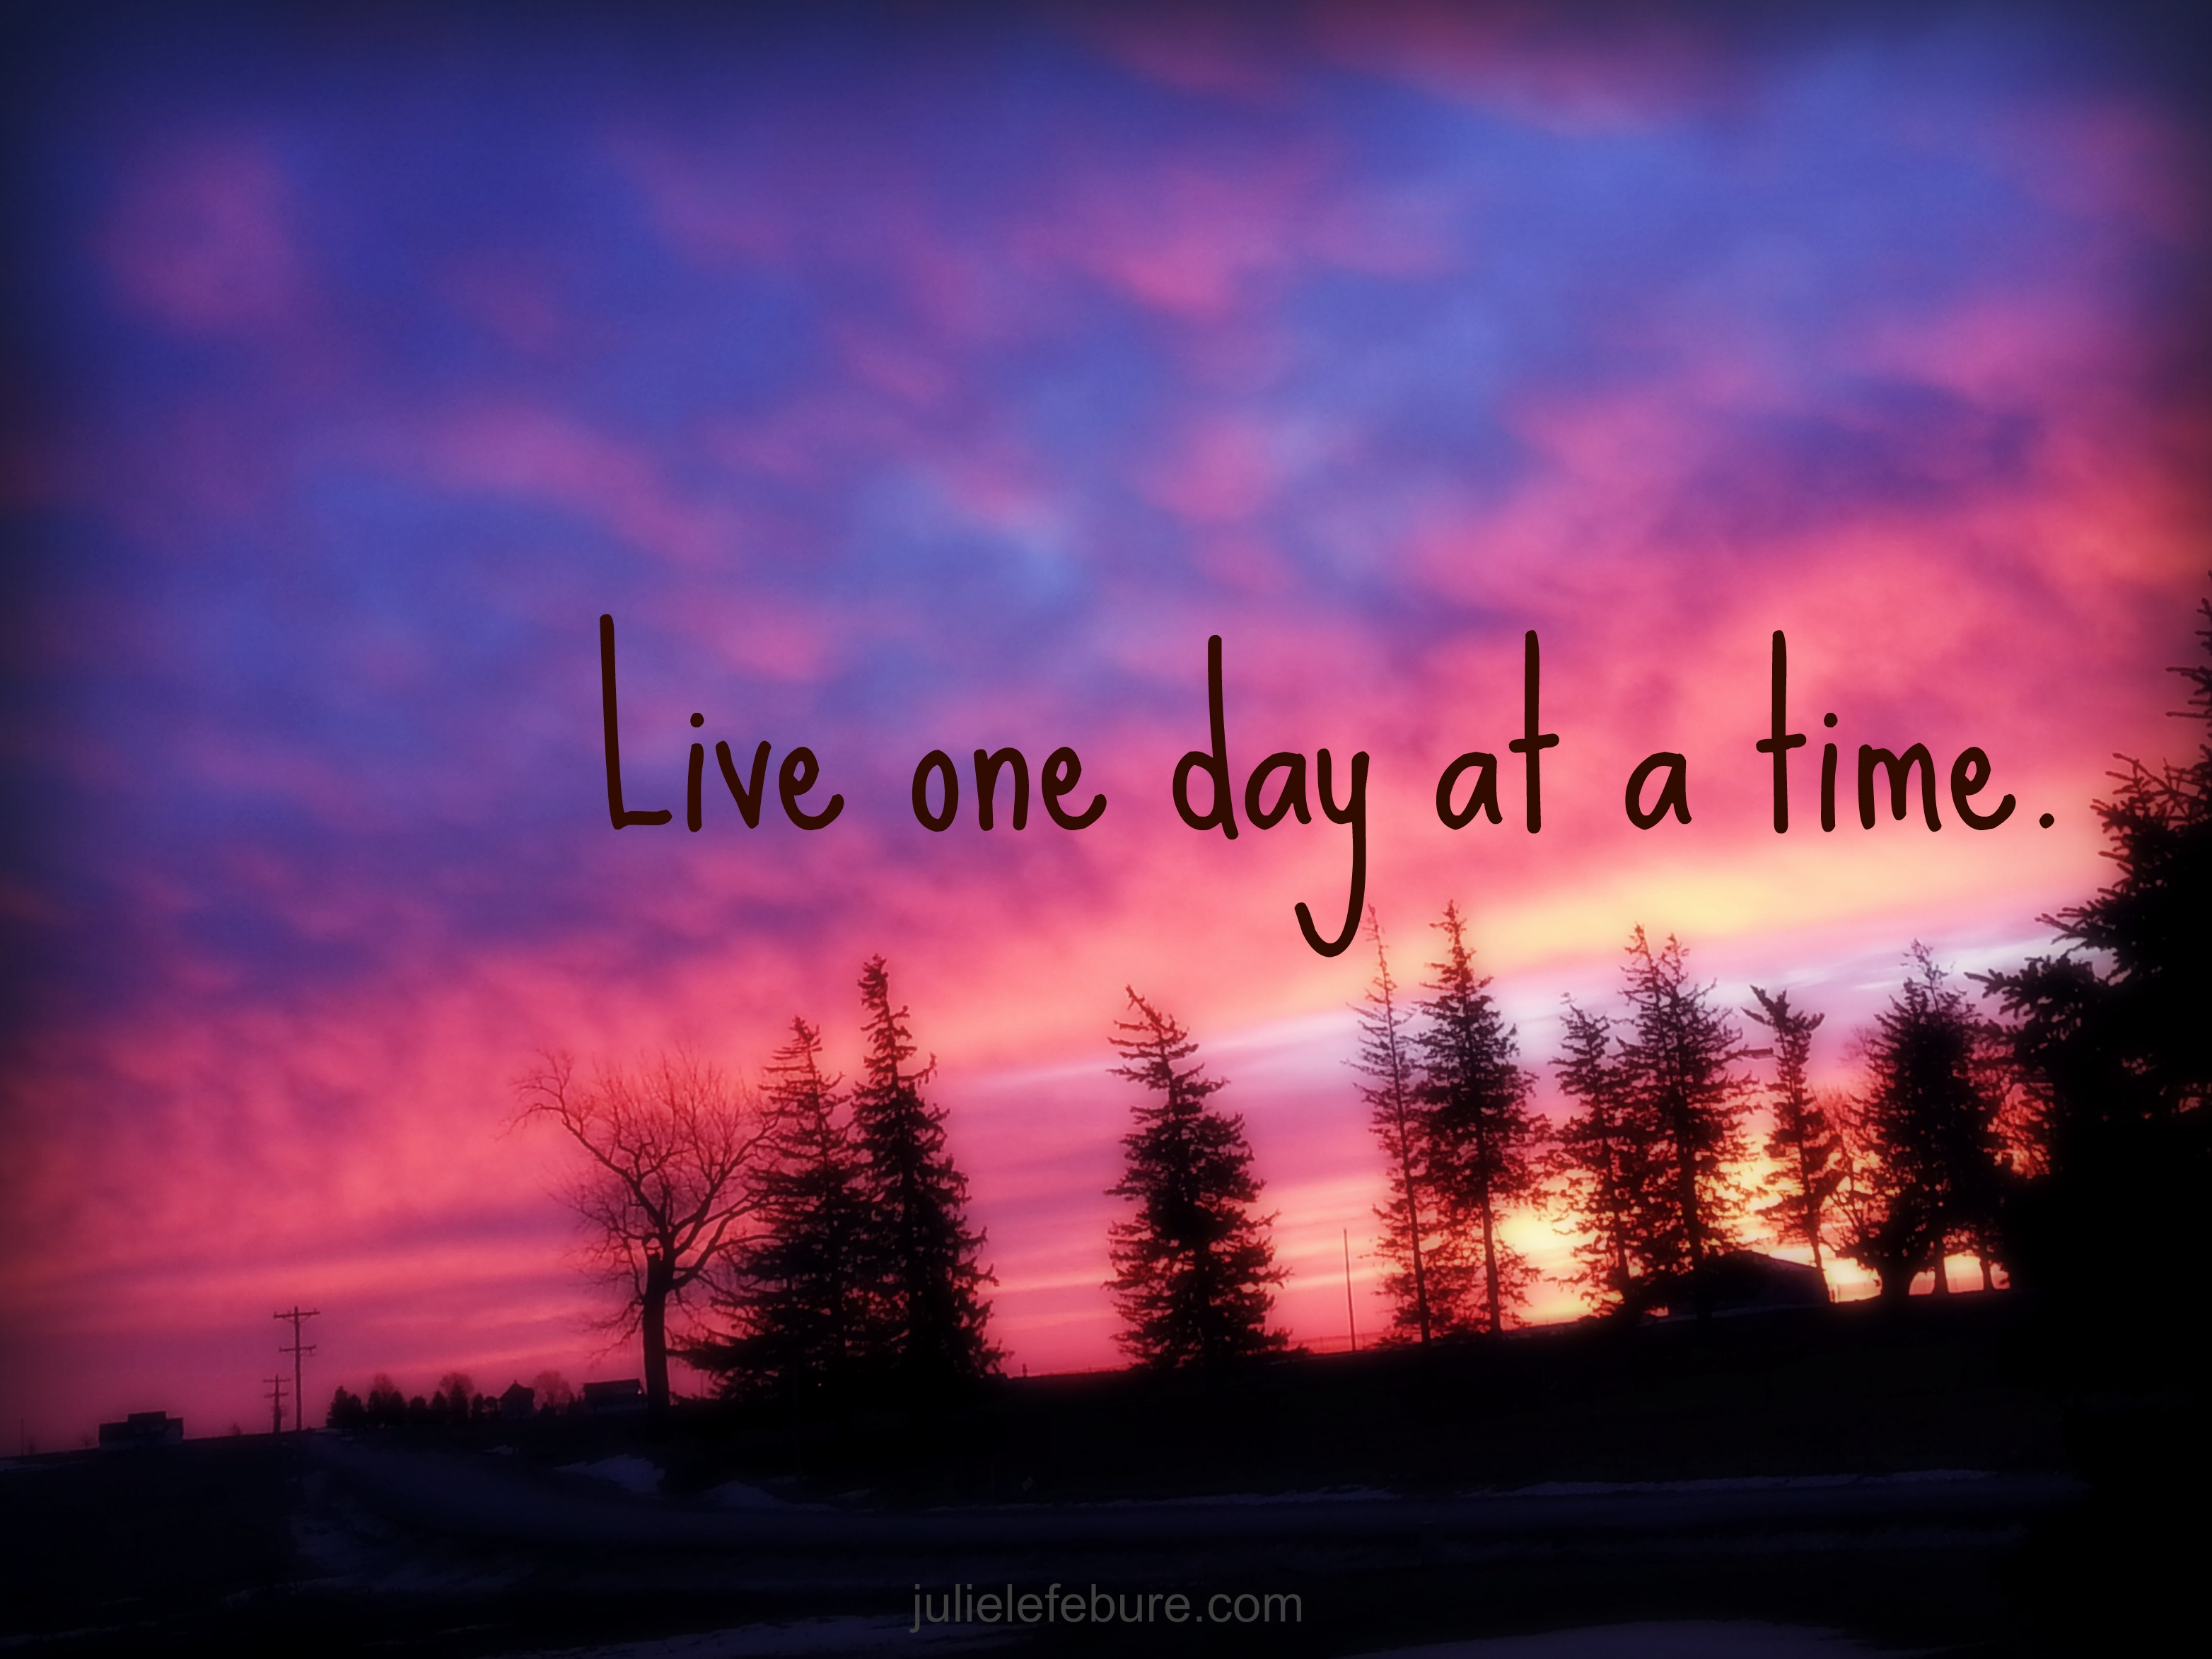 One Day At A Time - Julie Lefebure